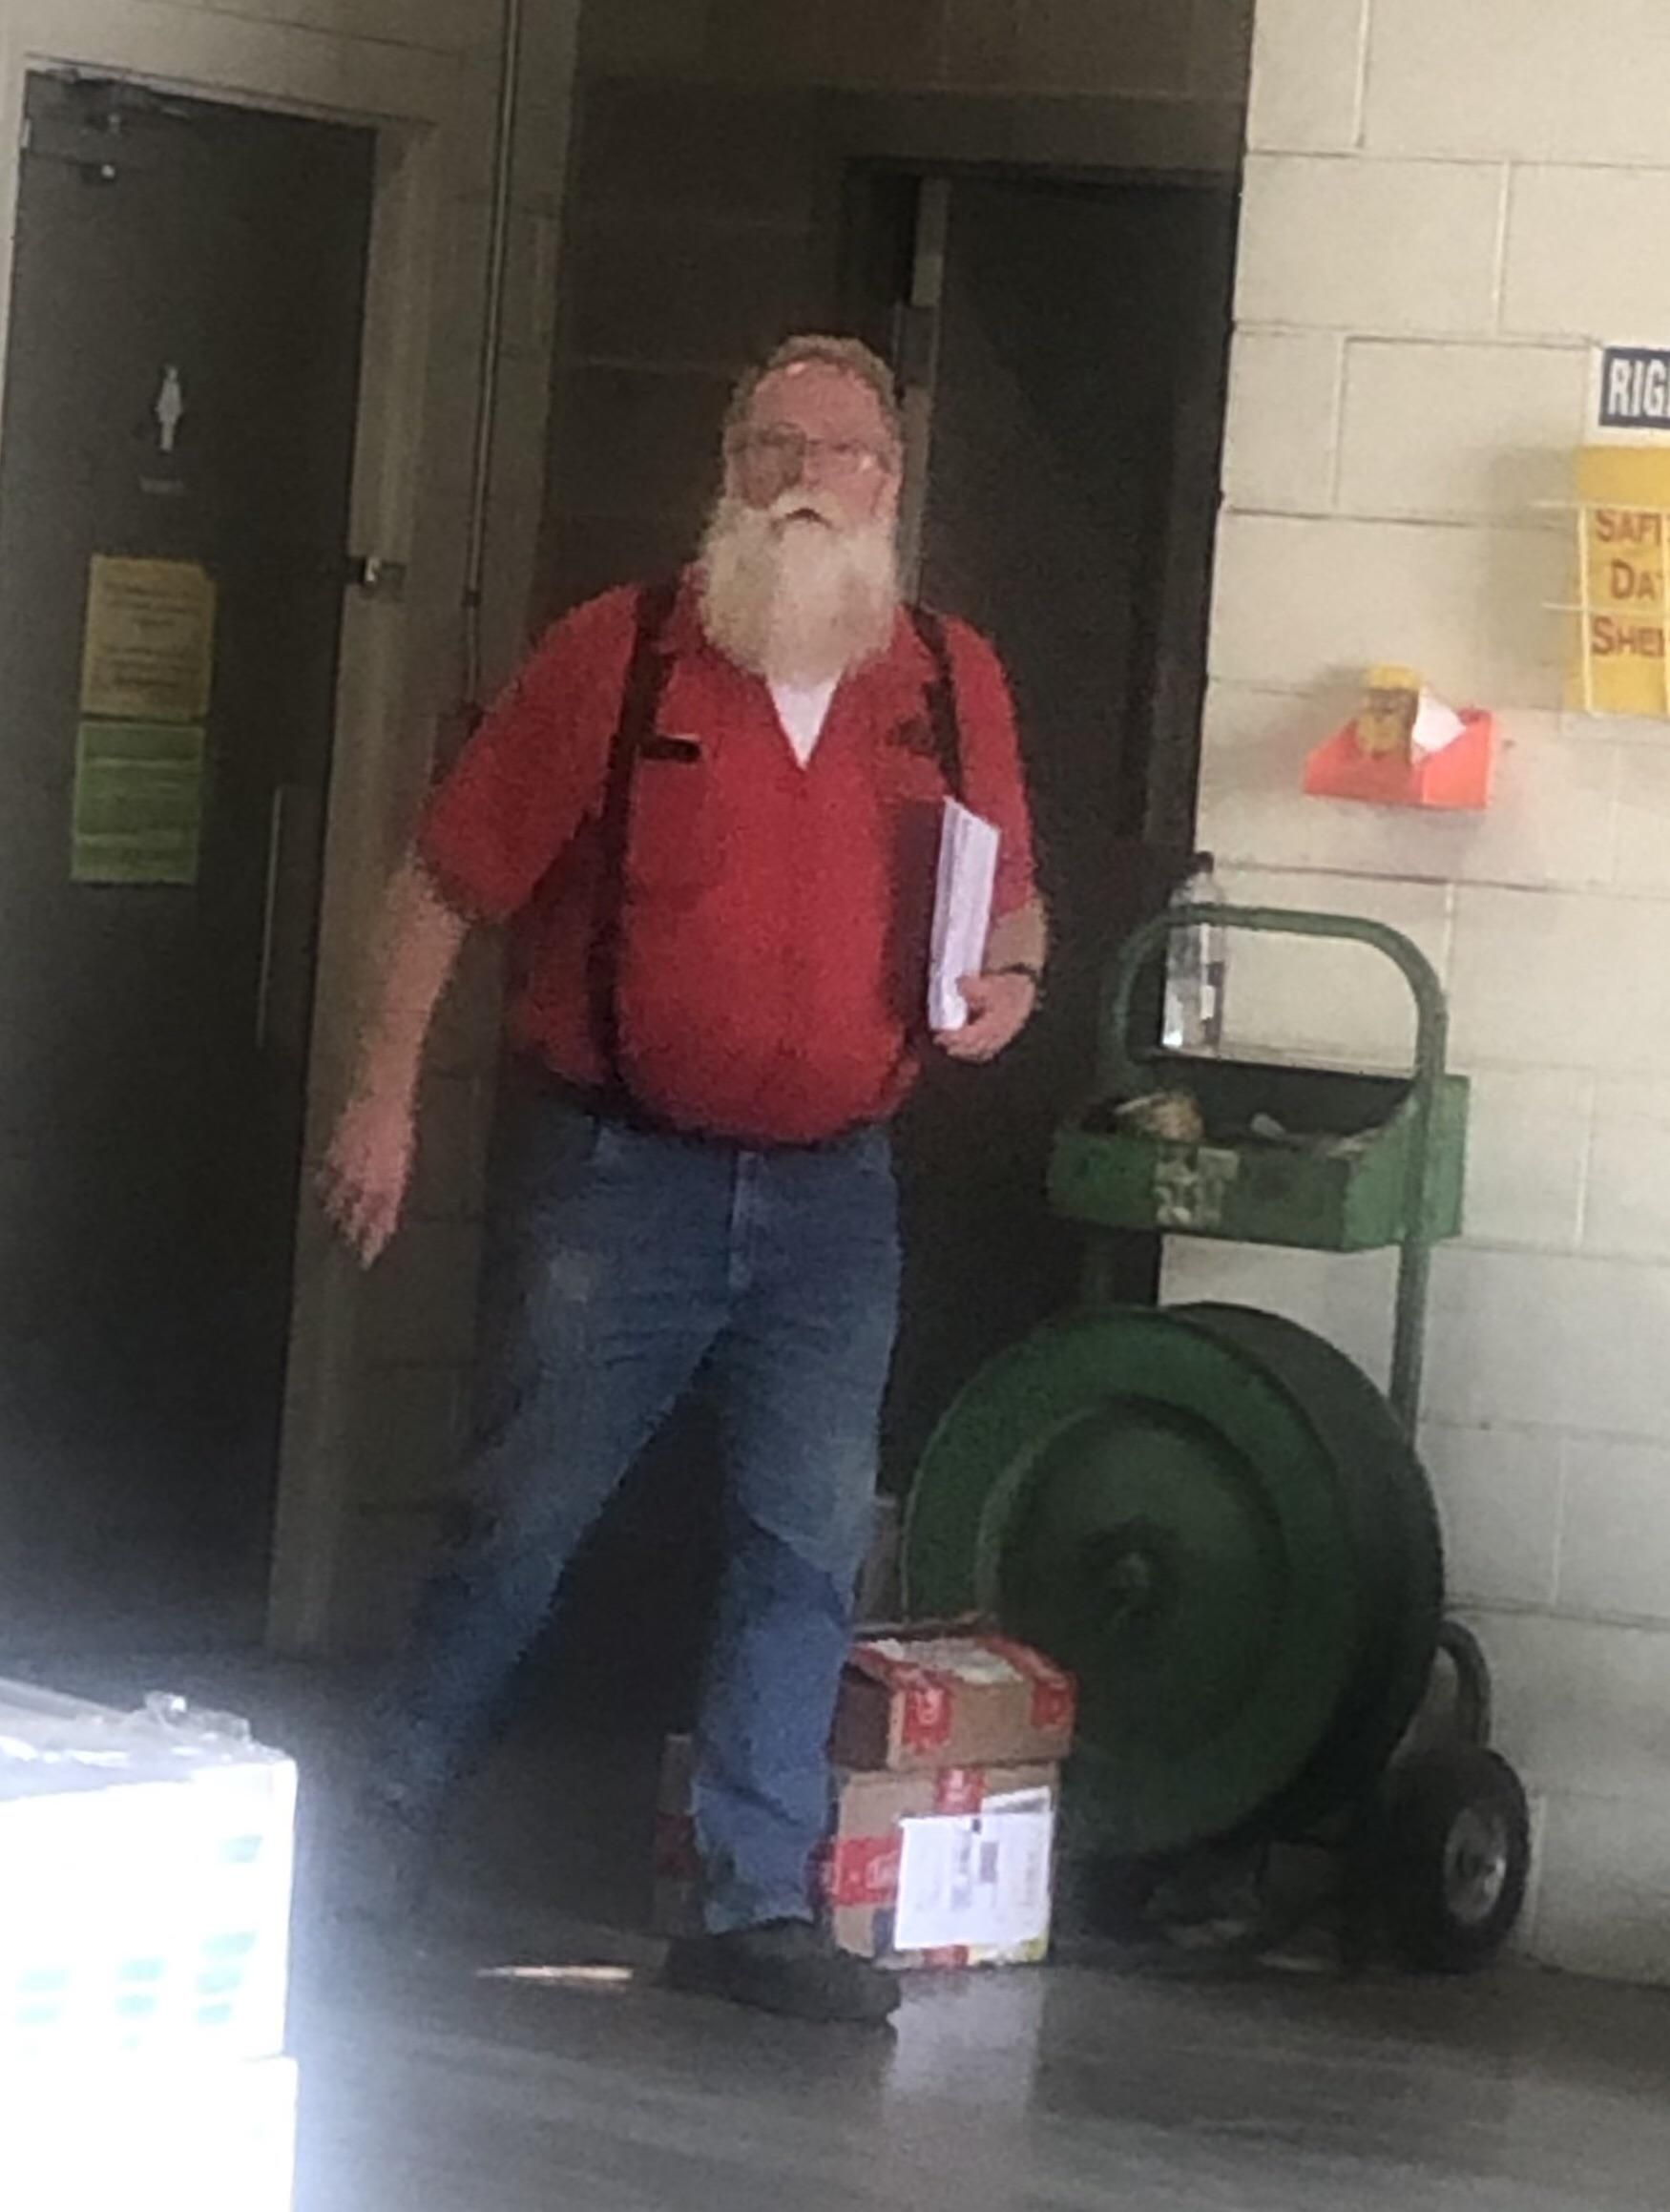 He's a truck driver the other 364 days of the year.